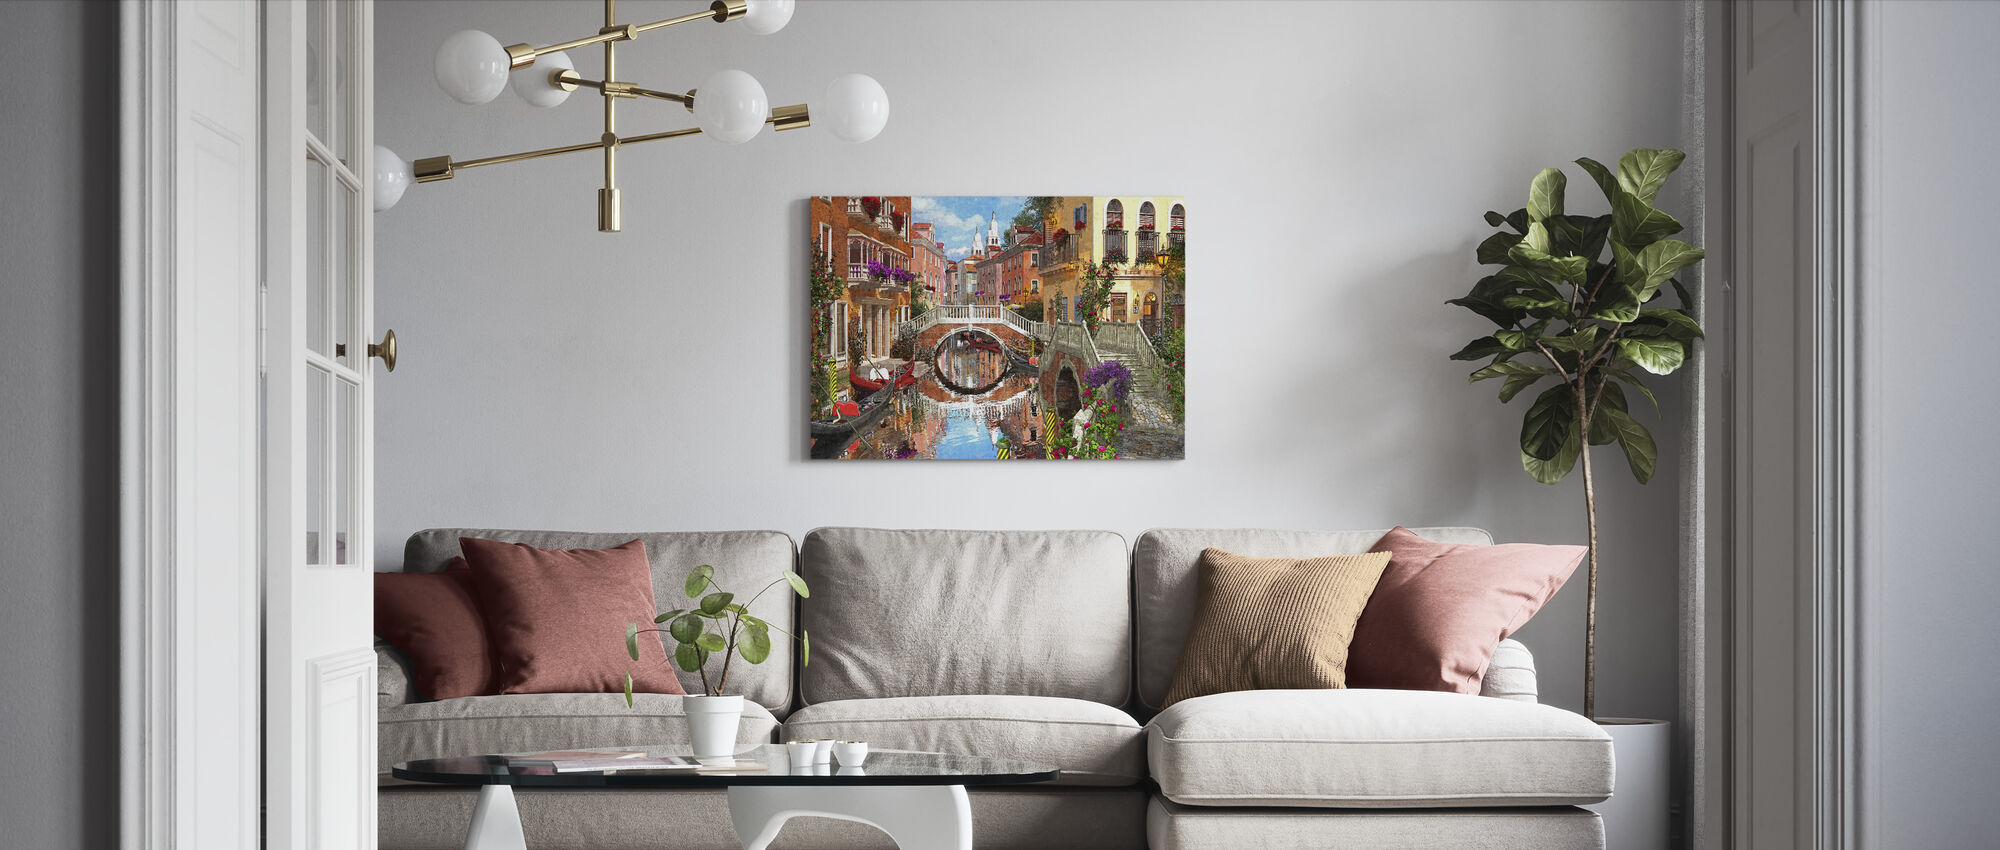 Venetian Waterway - Canvas print - Living Room